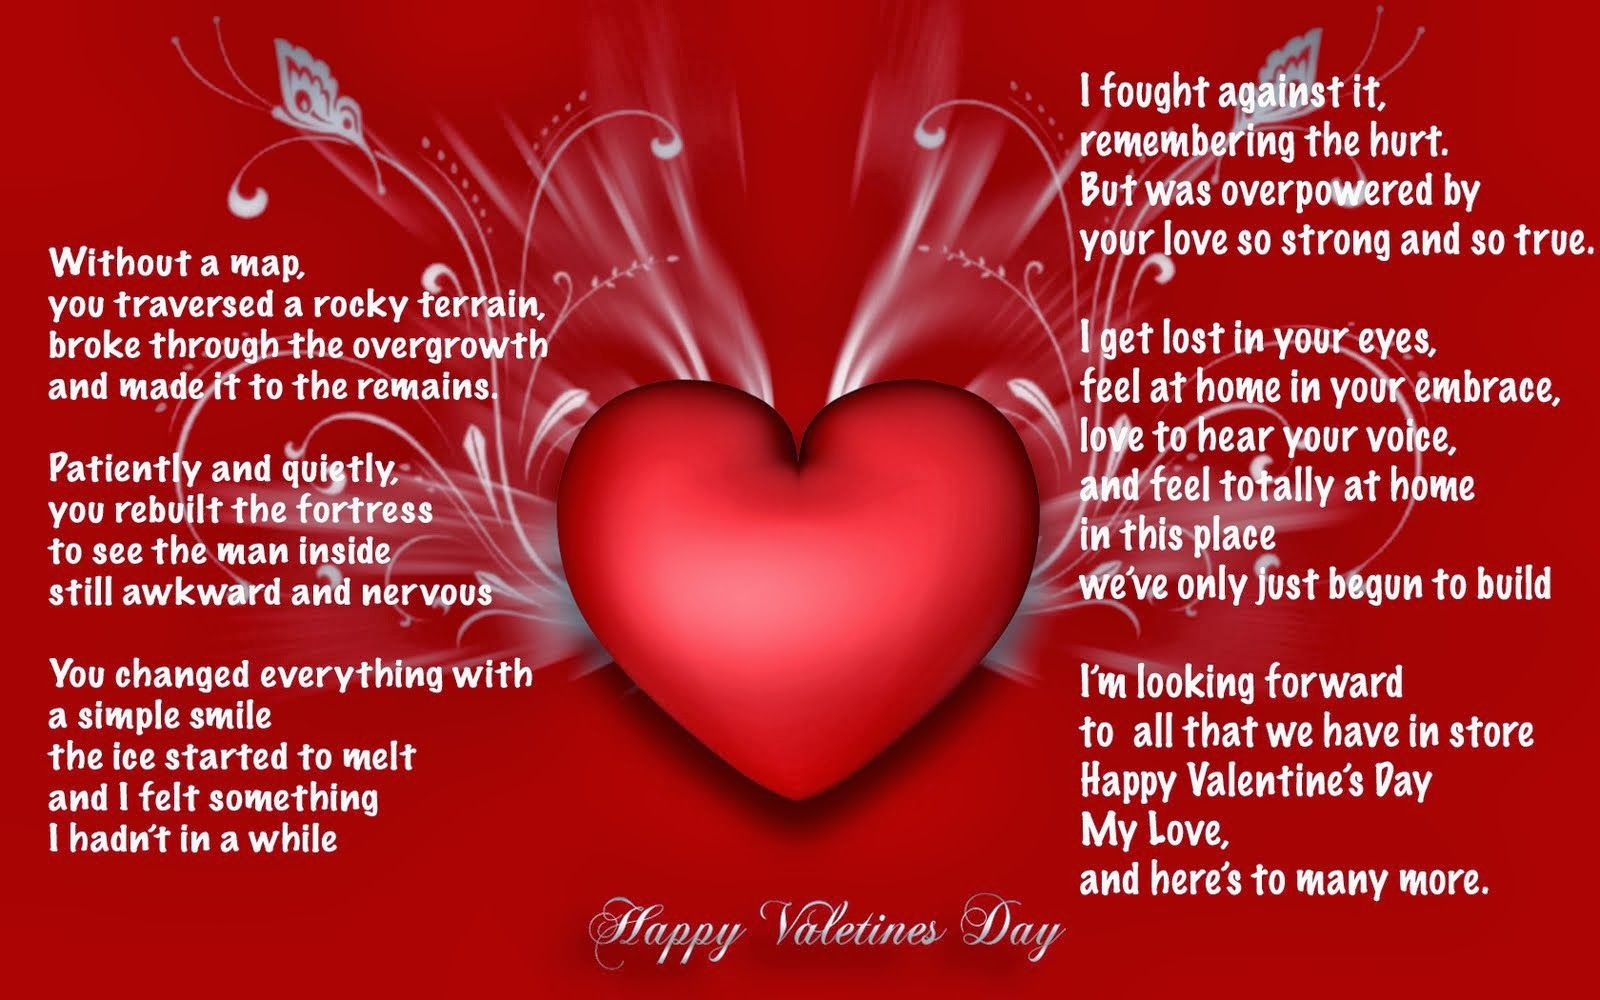 valentines day sayings quotes cheesy cute funny 2014 – Best Quotes for Valentines Cards